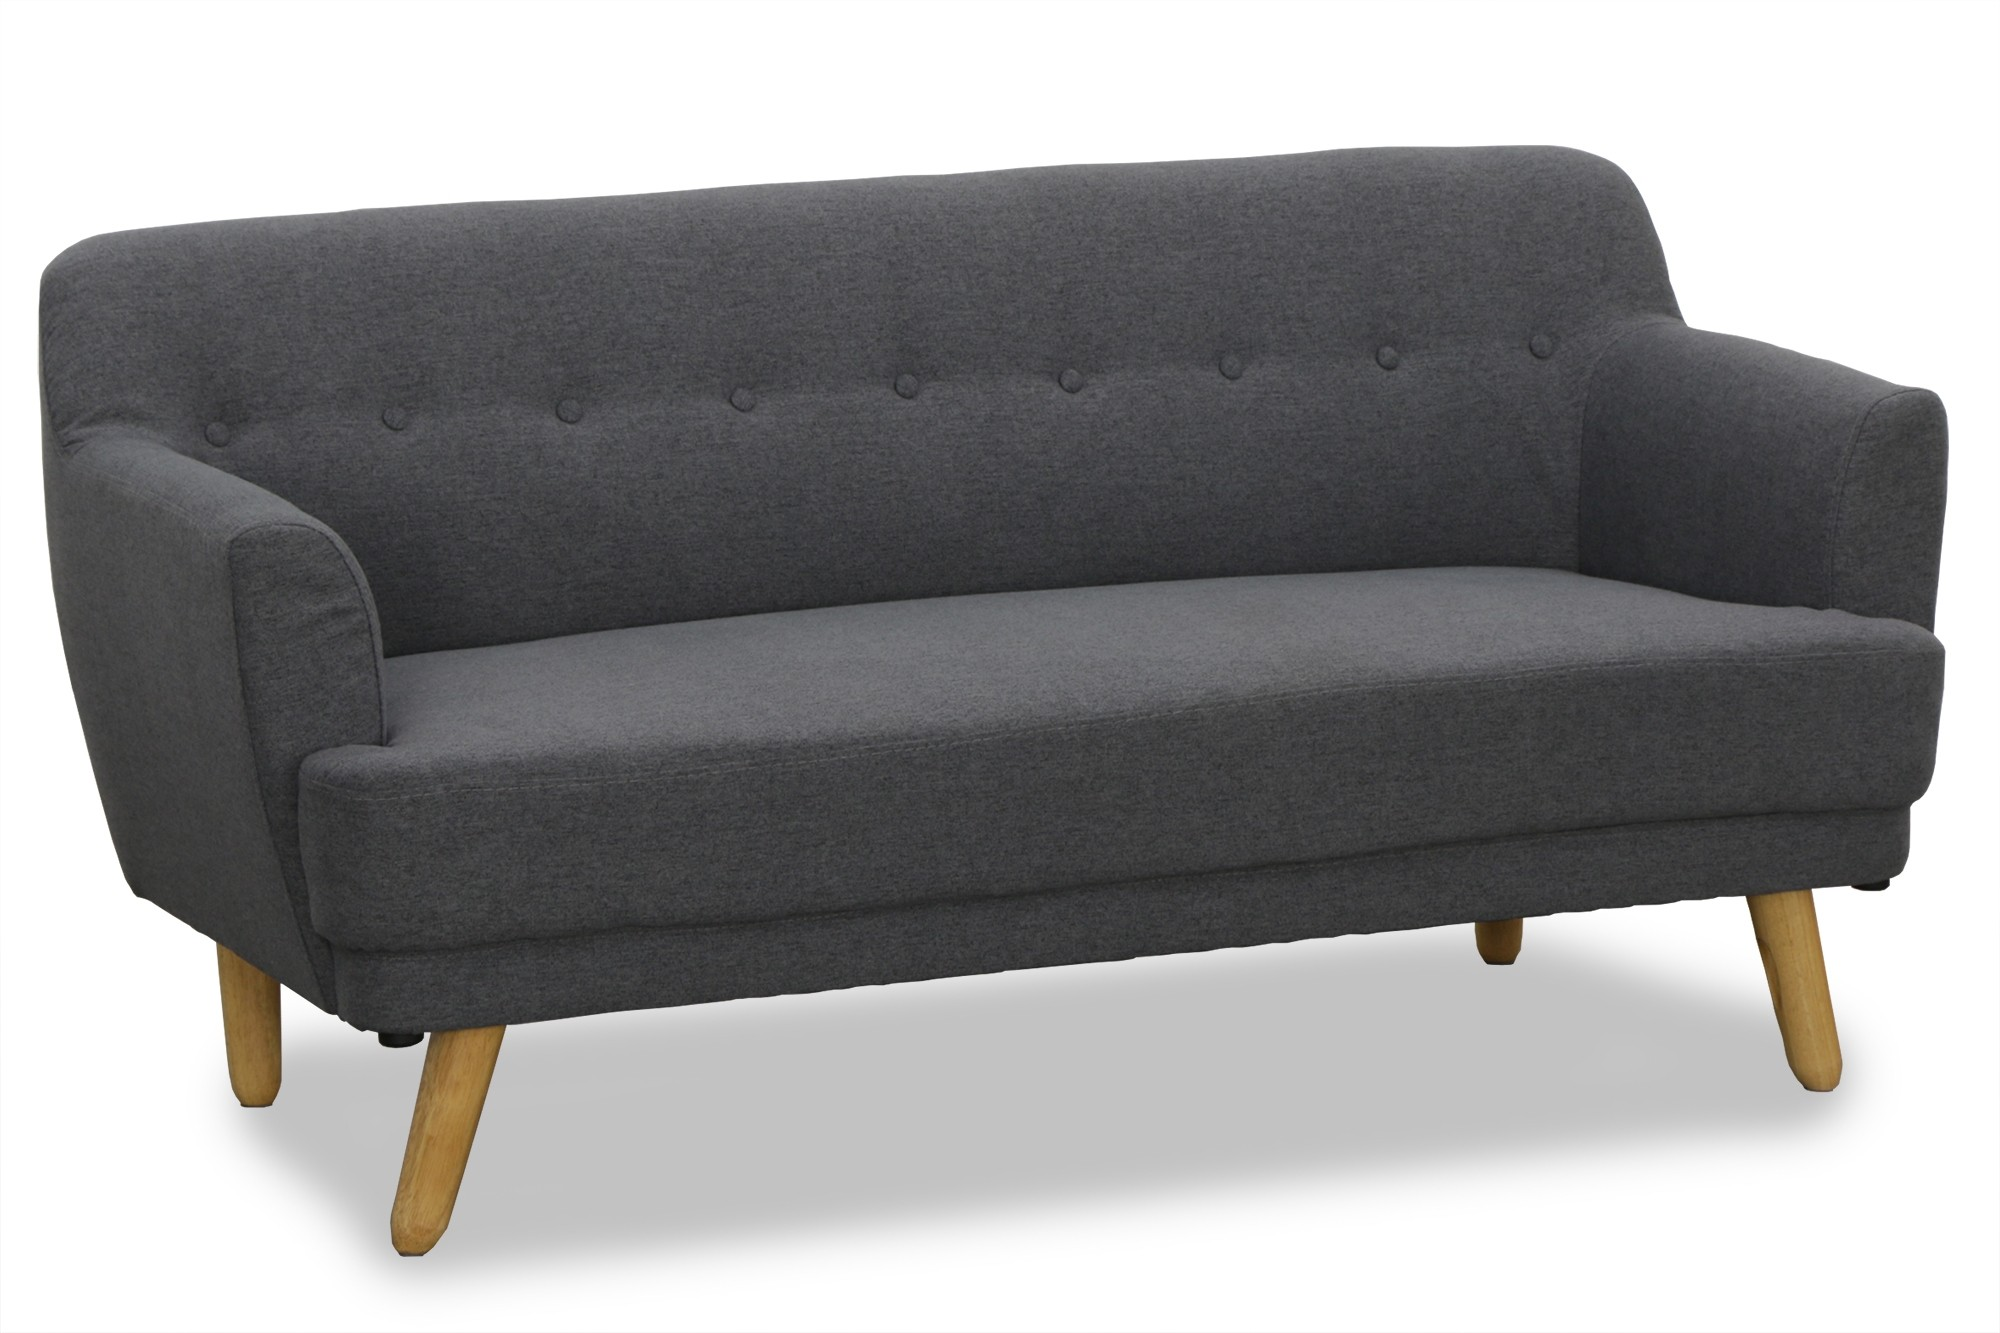 one and half seater sofa retro leather uk haruki 2 sofas beds recliners